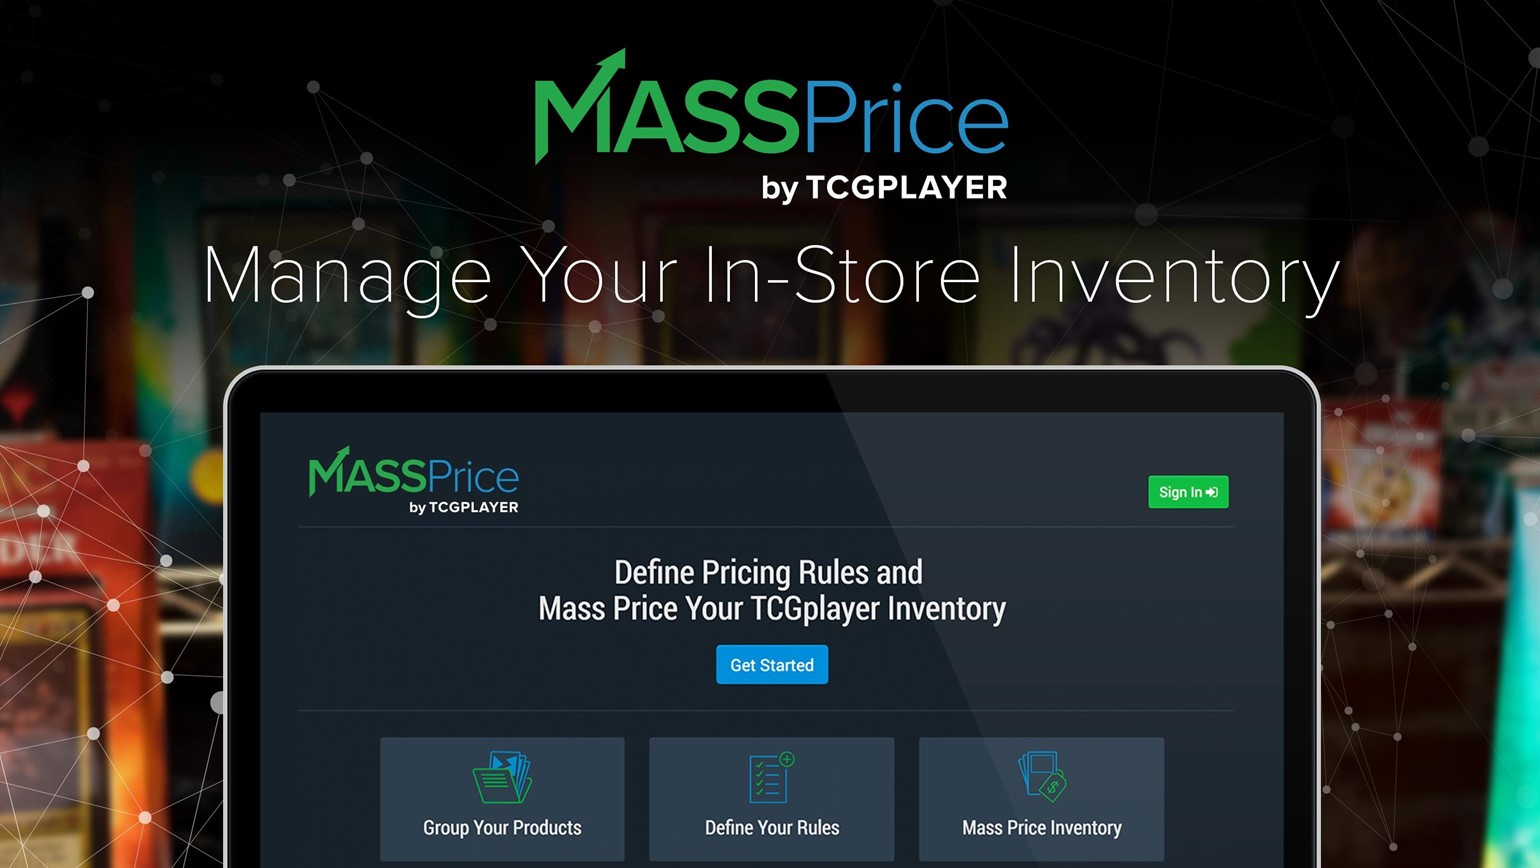 Manage Your In-Store Inventory with New MassPrice Functionality